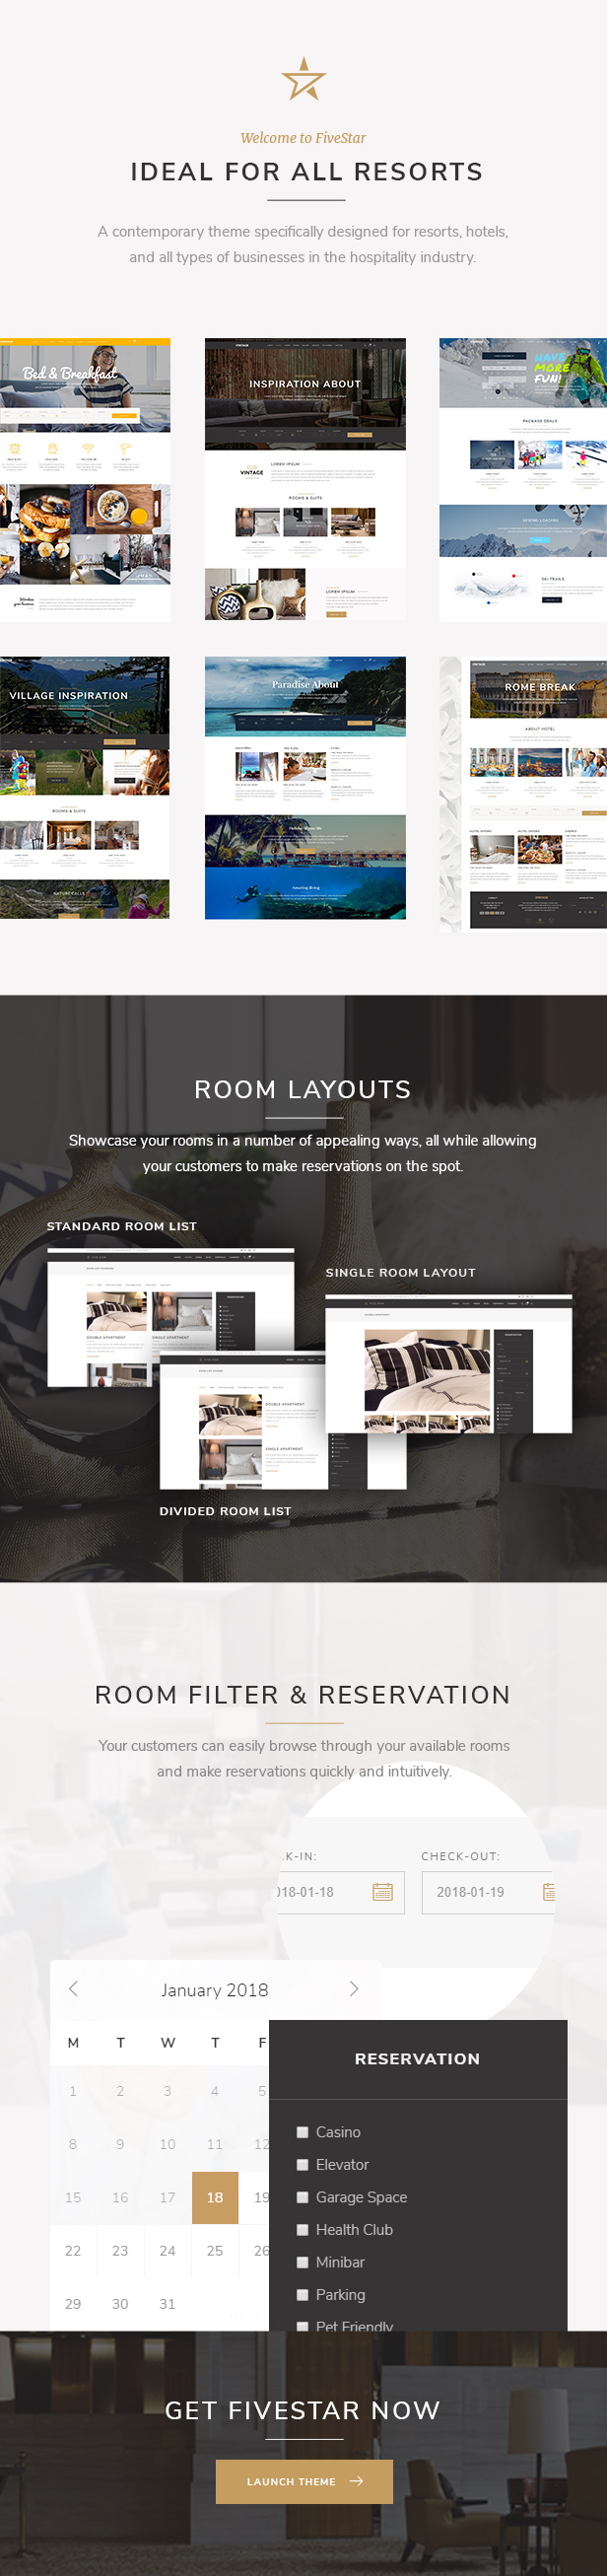 FiveStar - Hotel Booking Theme - 1